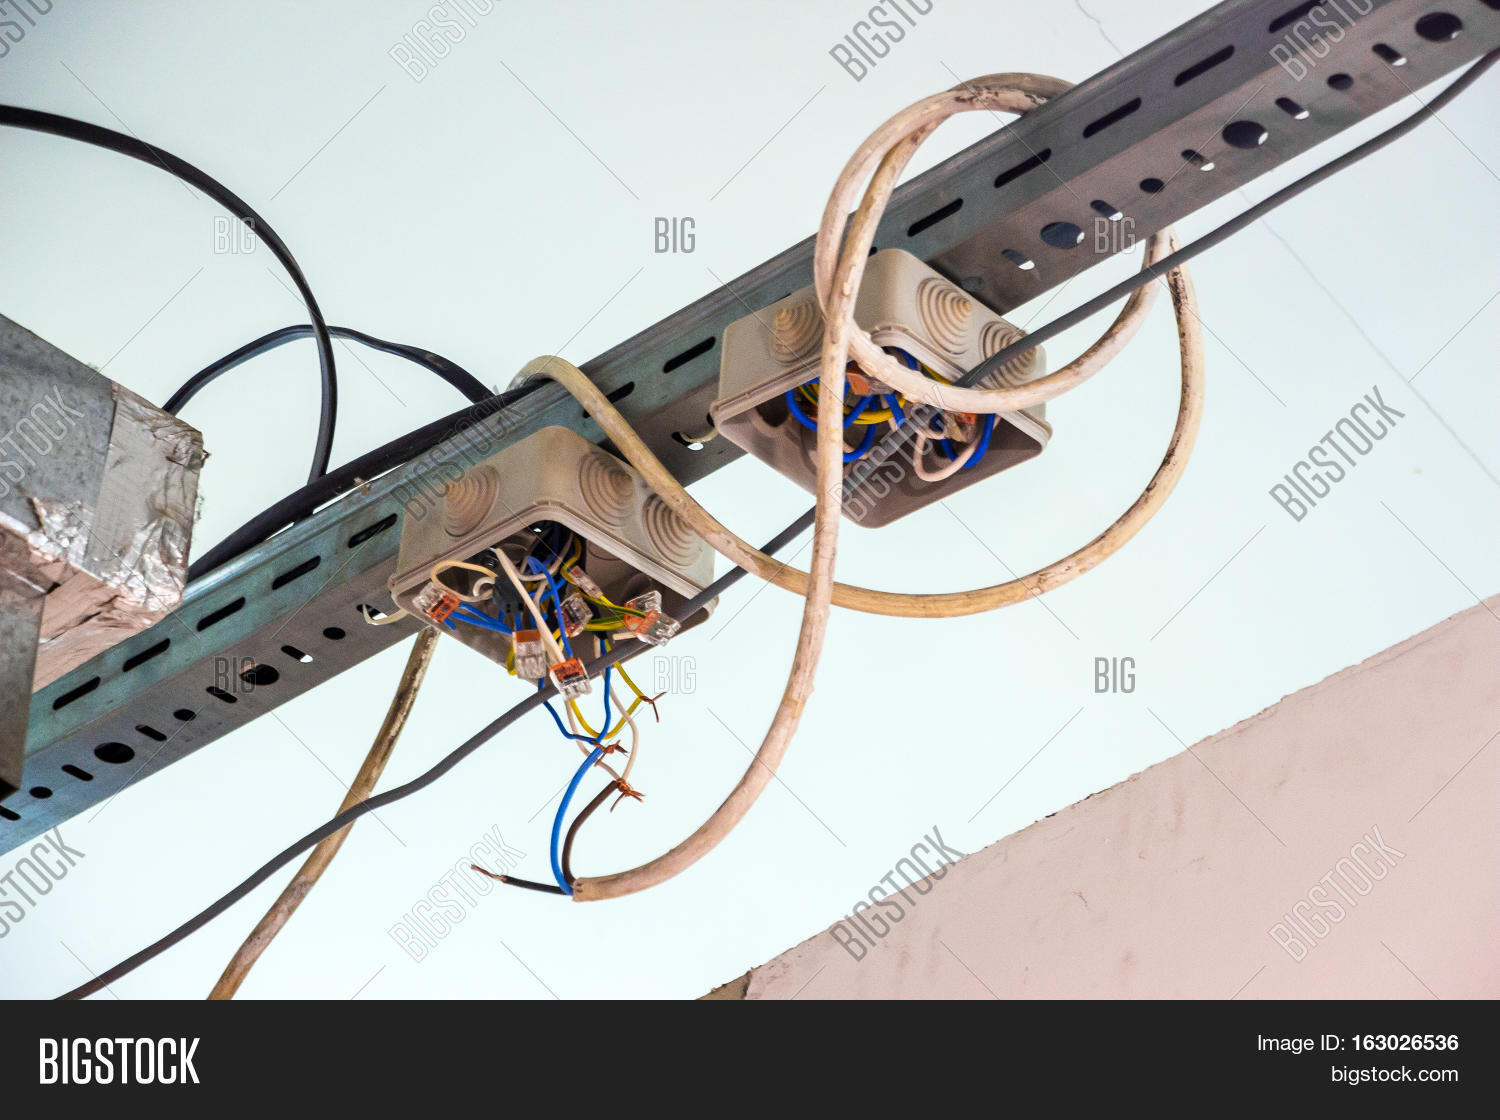 Electrical Wiring Image & Photo (Free Trial) | Bigstock